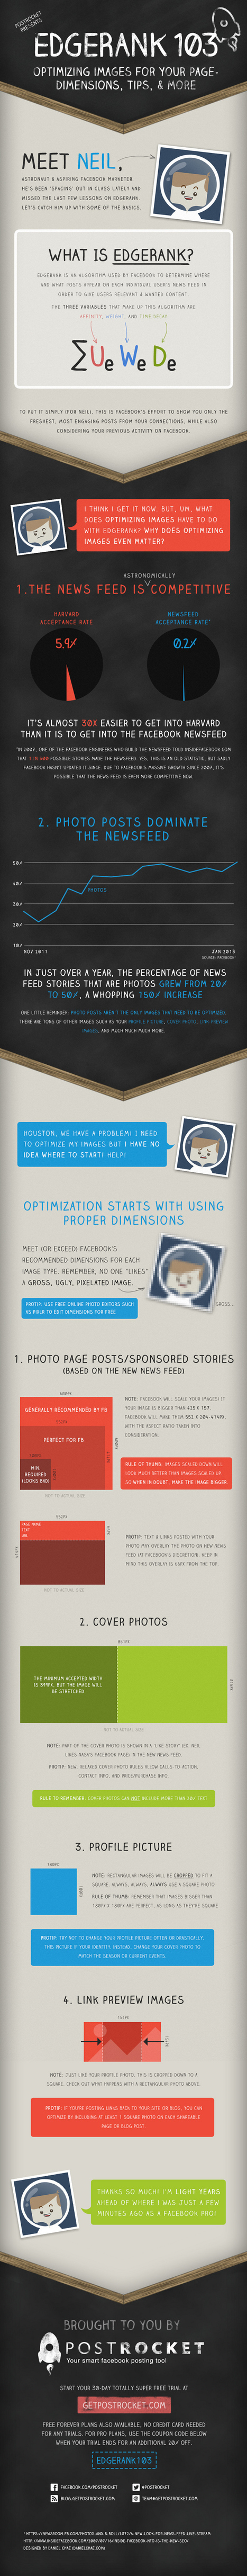 Infographic: Best Practices for Optimizing Facebook Photos | Guerrilla Social Media | Scoop.it